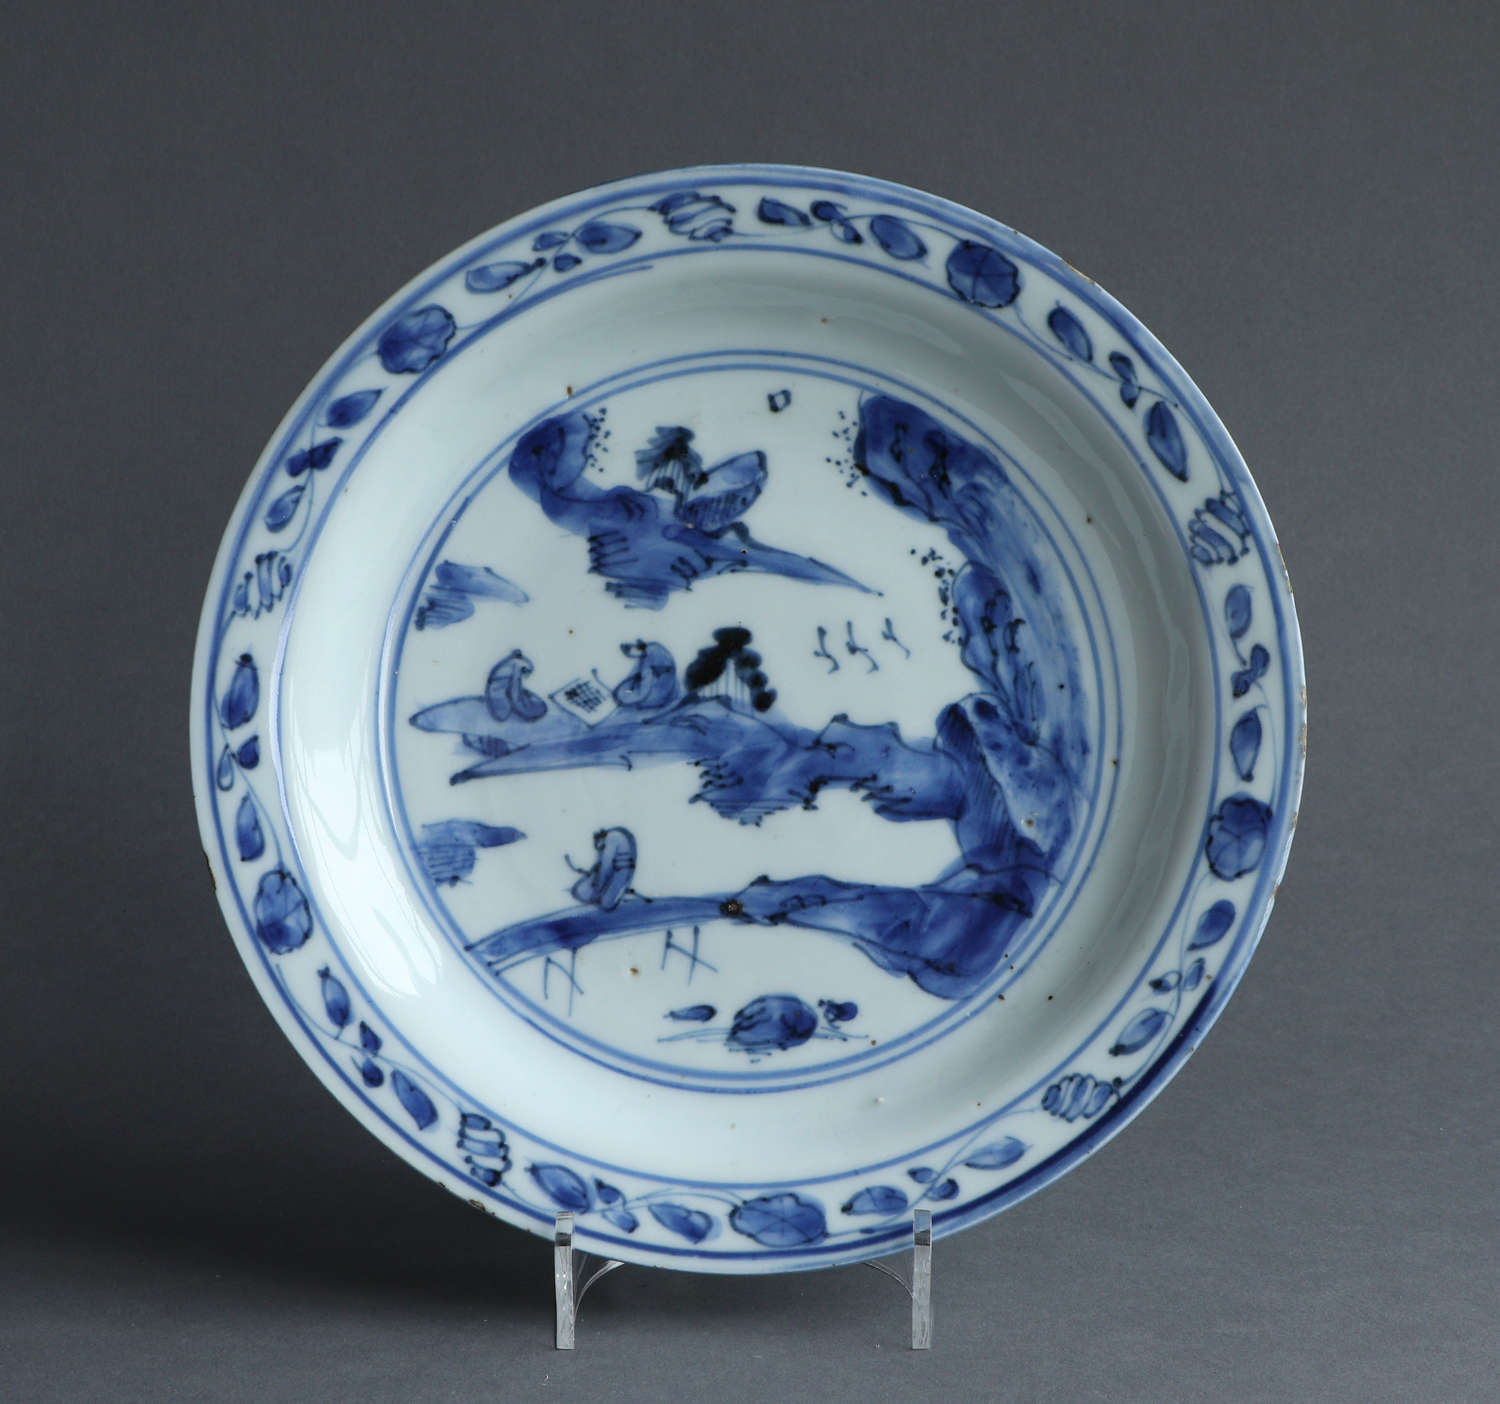 A Chinese late Ming dish with a landscape scene with scholars